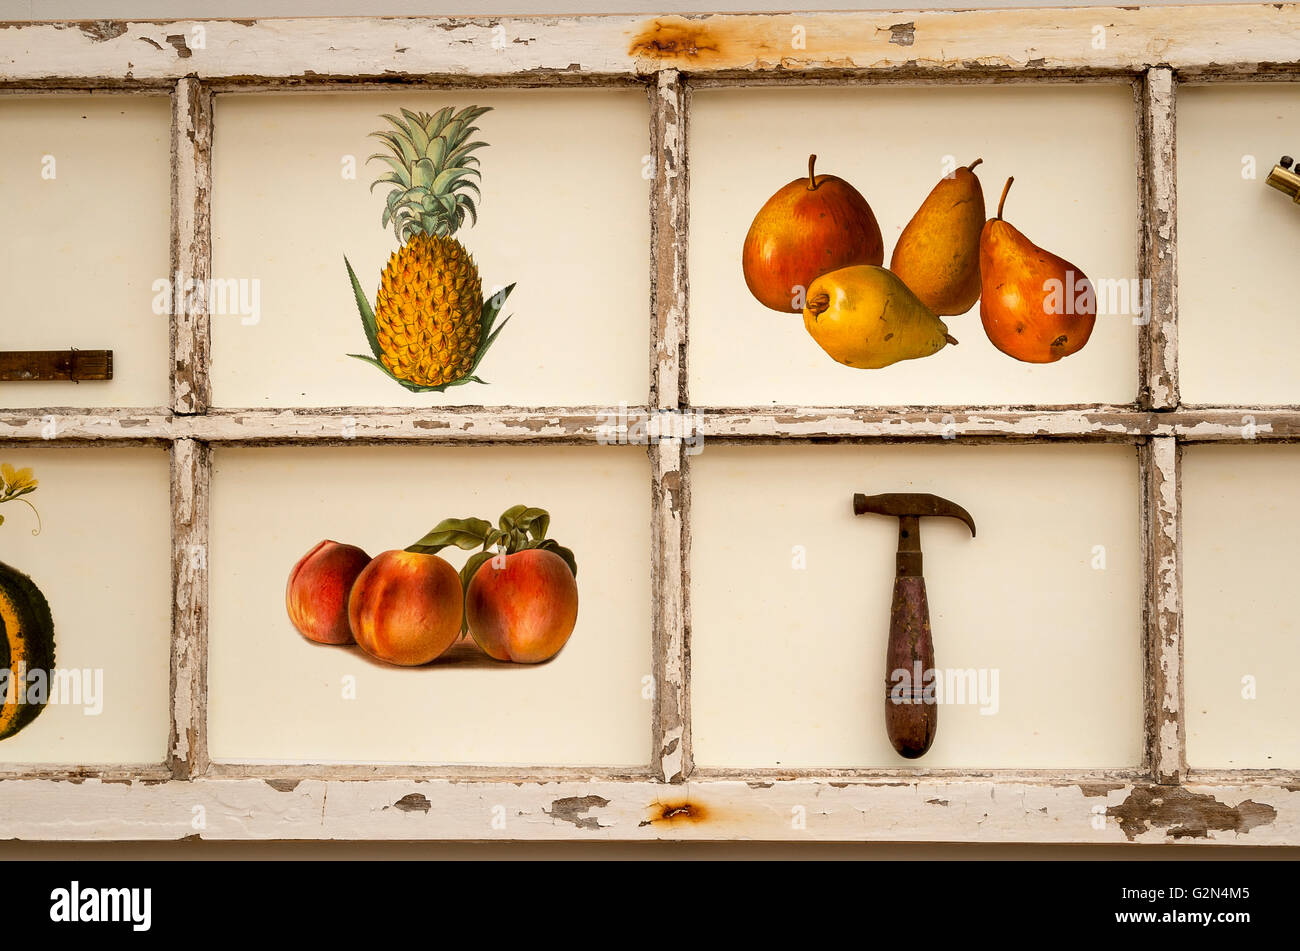 Detail of an illustrative picture depicting fruit and old tools - Stock Image